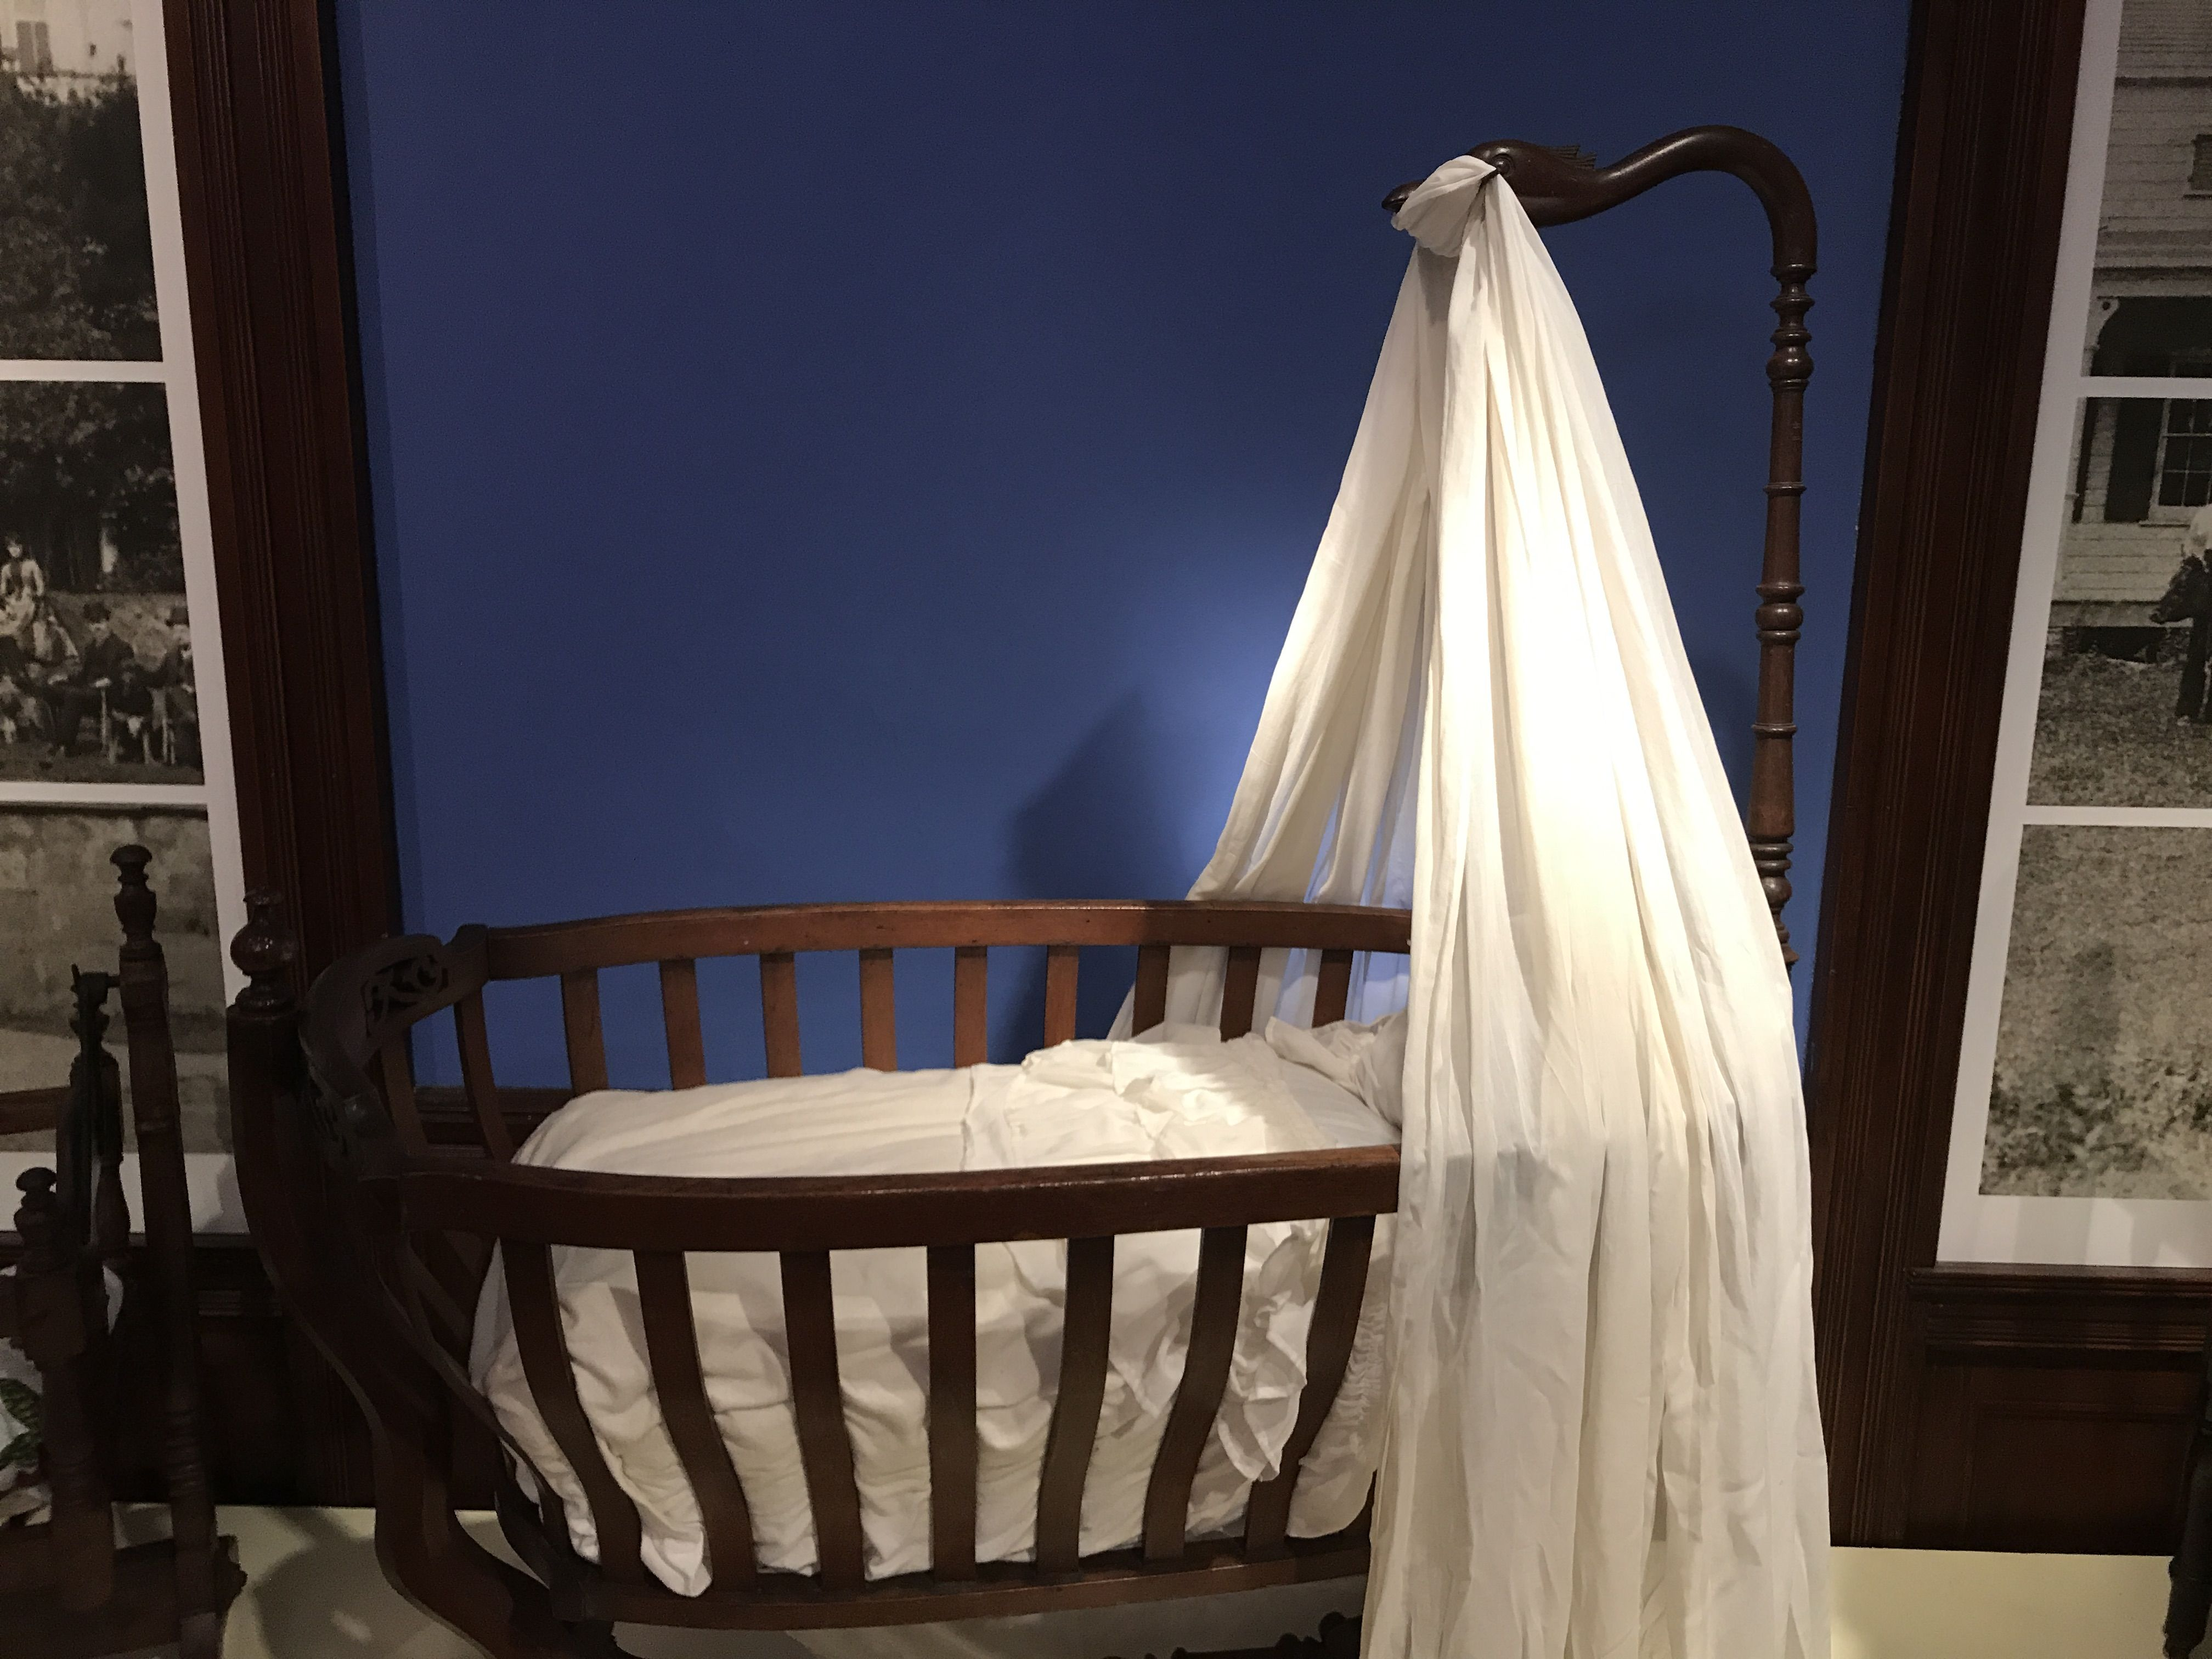 Collection Of Staten Island Historical Society 1820 1850 Hanging Cradle This European Styled Resembled Furniture Victorian Era And Such A